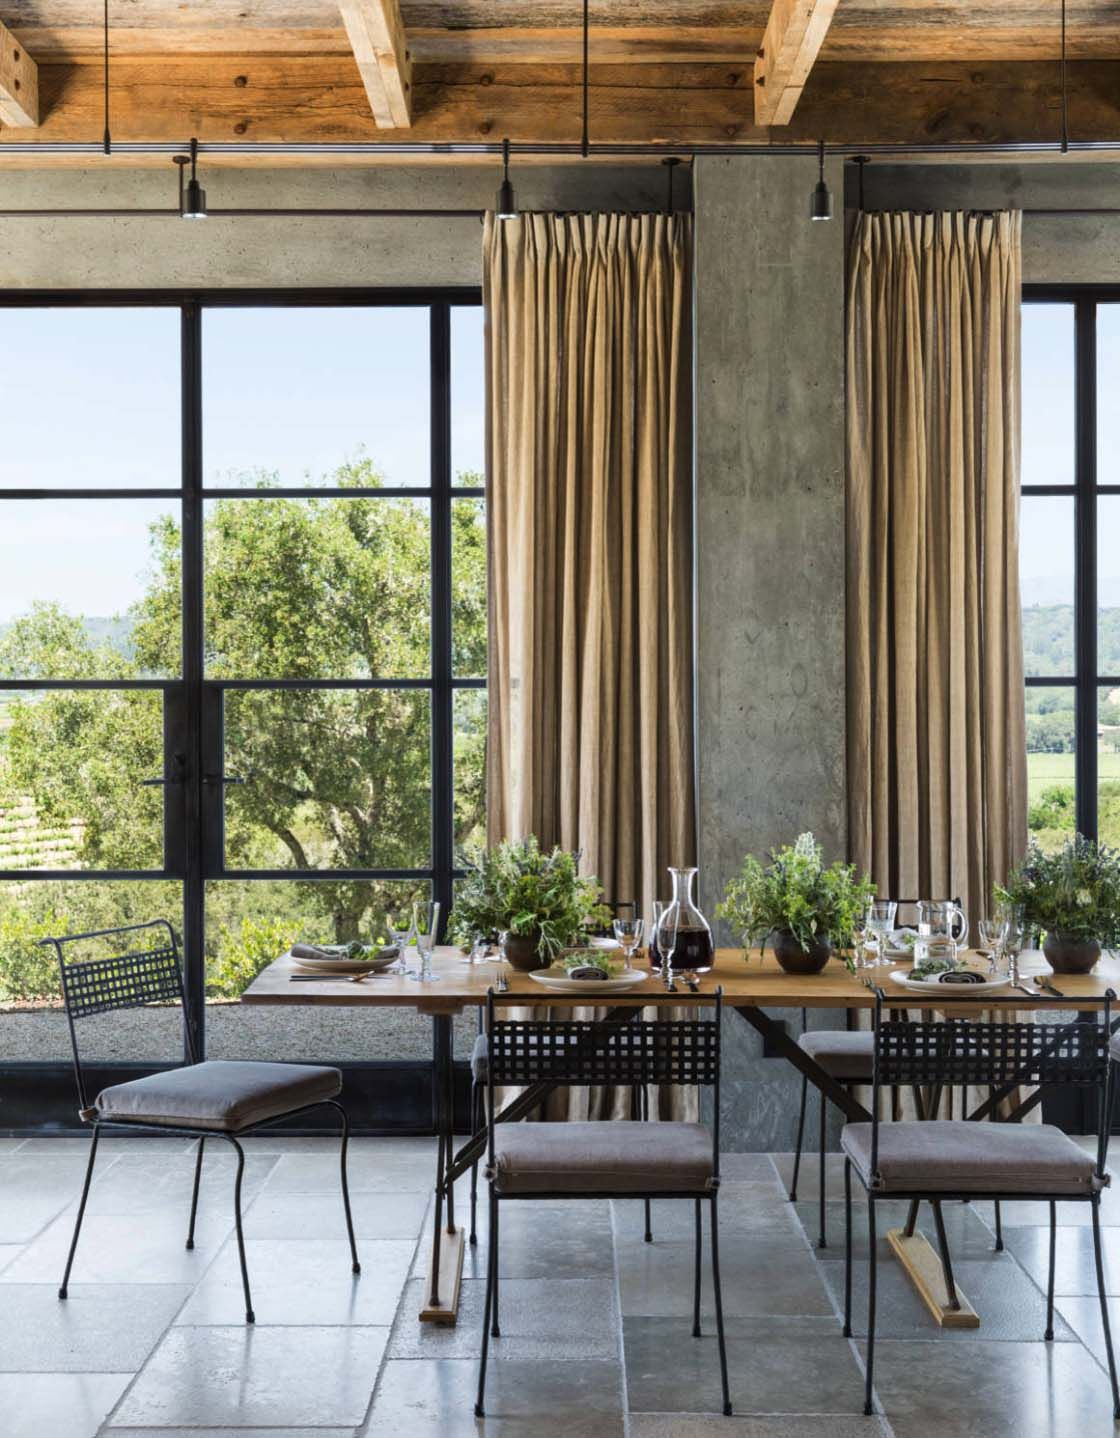 California wine country farmhouse designed with timeless